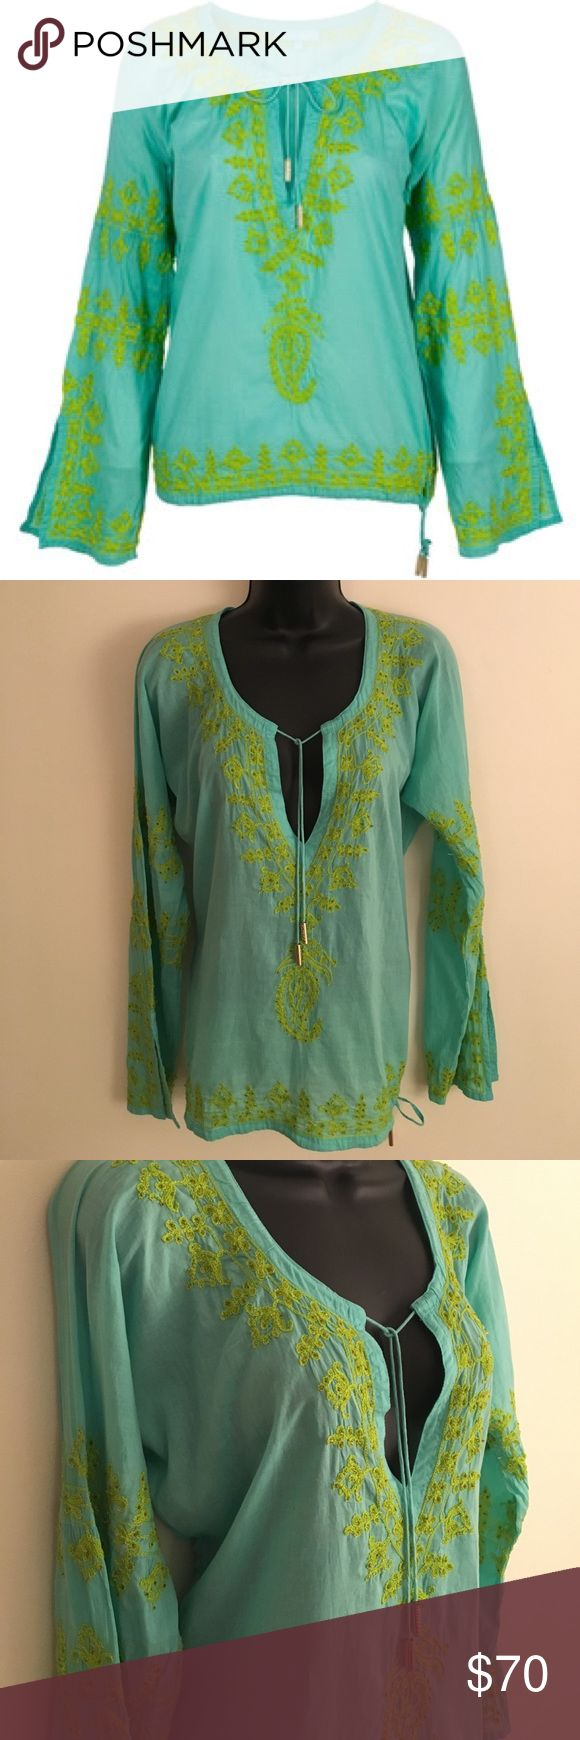 Melissa Odabash Cora Kaftan Top Stunning Melissa Odabash Cora Kaftan Tunic. Teal Blue with Green Embroidery and Beading. 100% Cotton. Never Worn, New Condition! Price is Negotiable! Melissa Odabash Swim Coverups